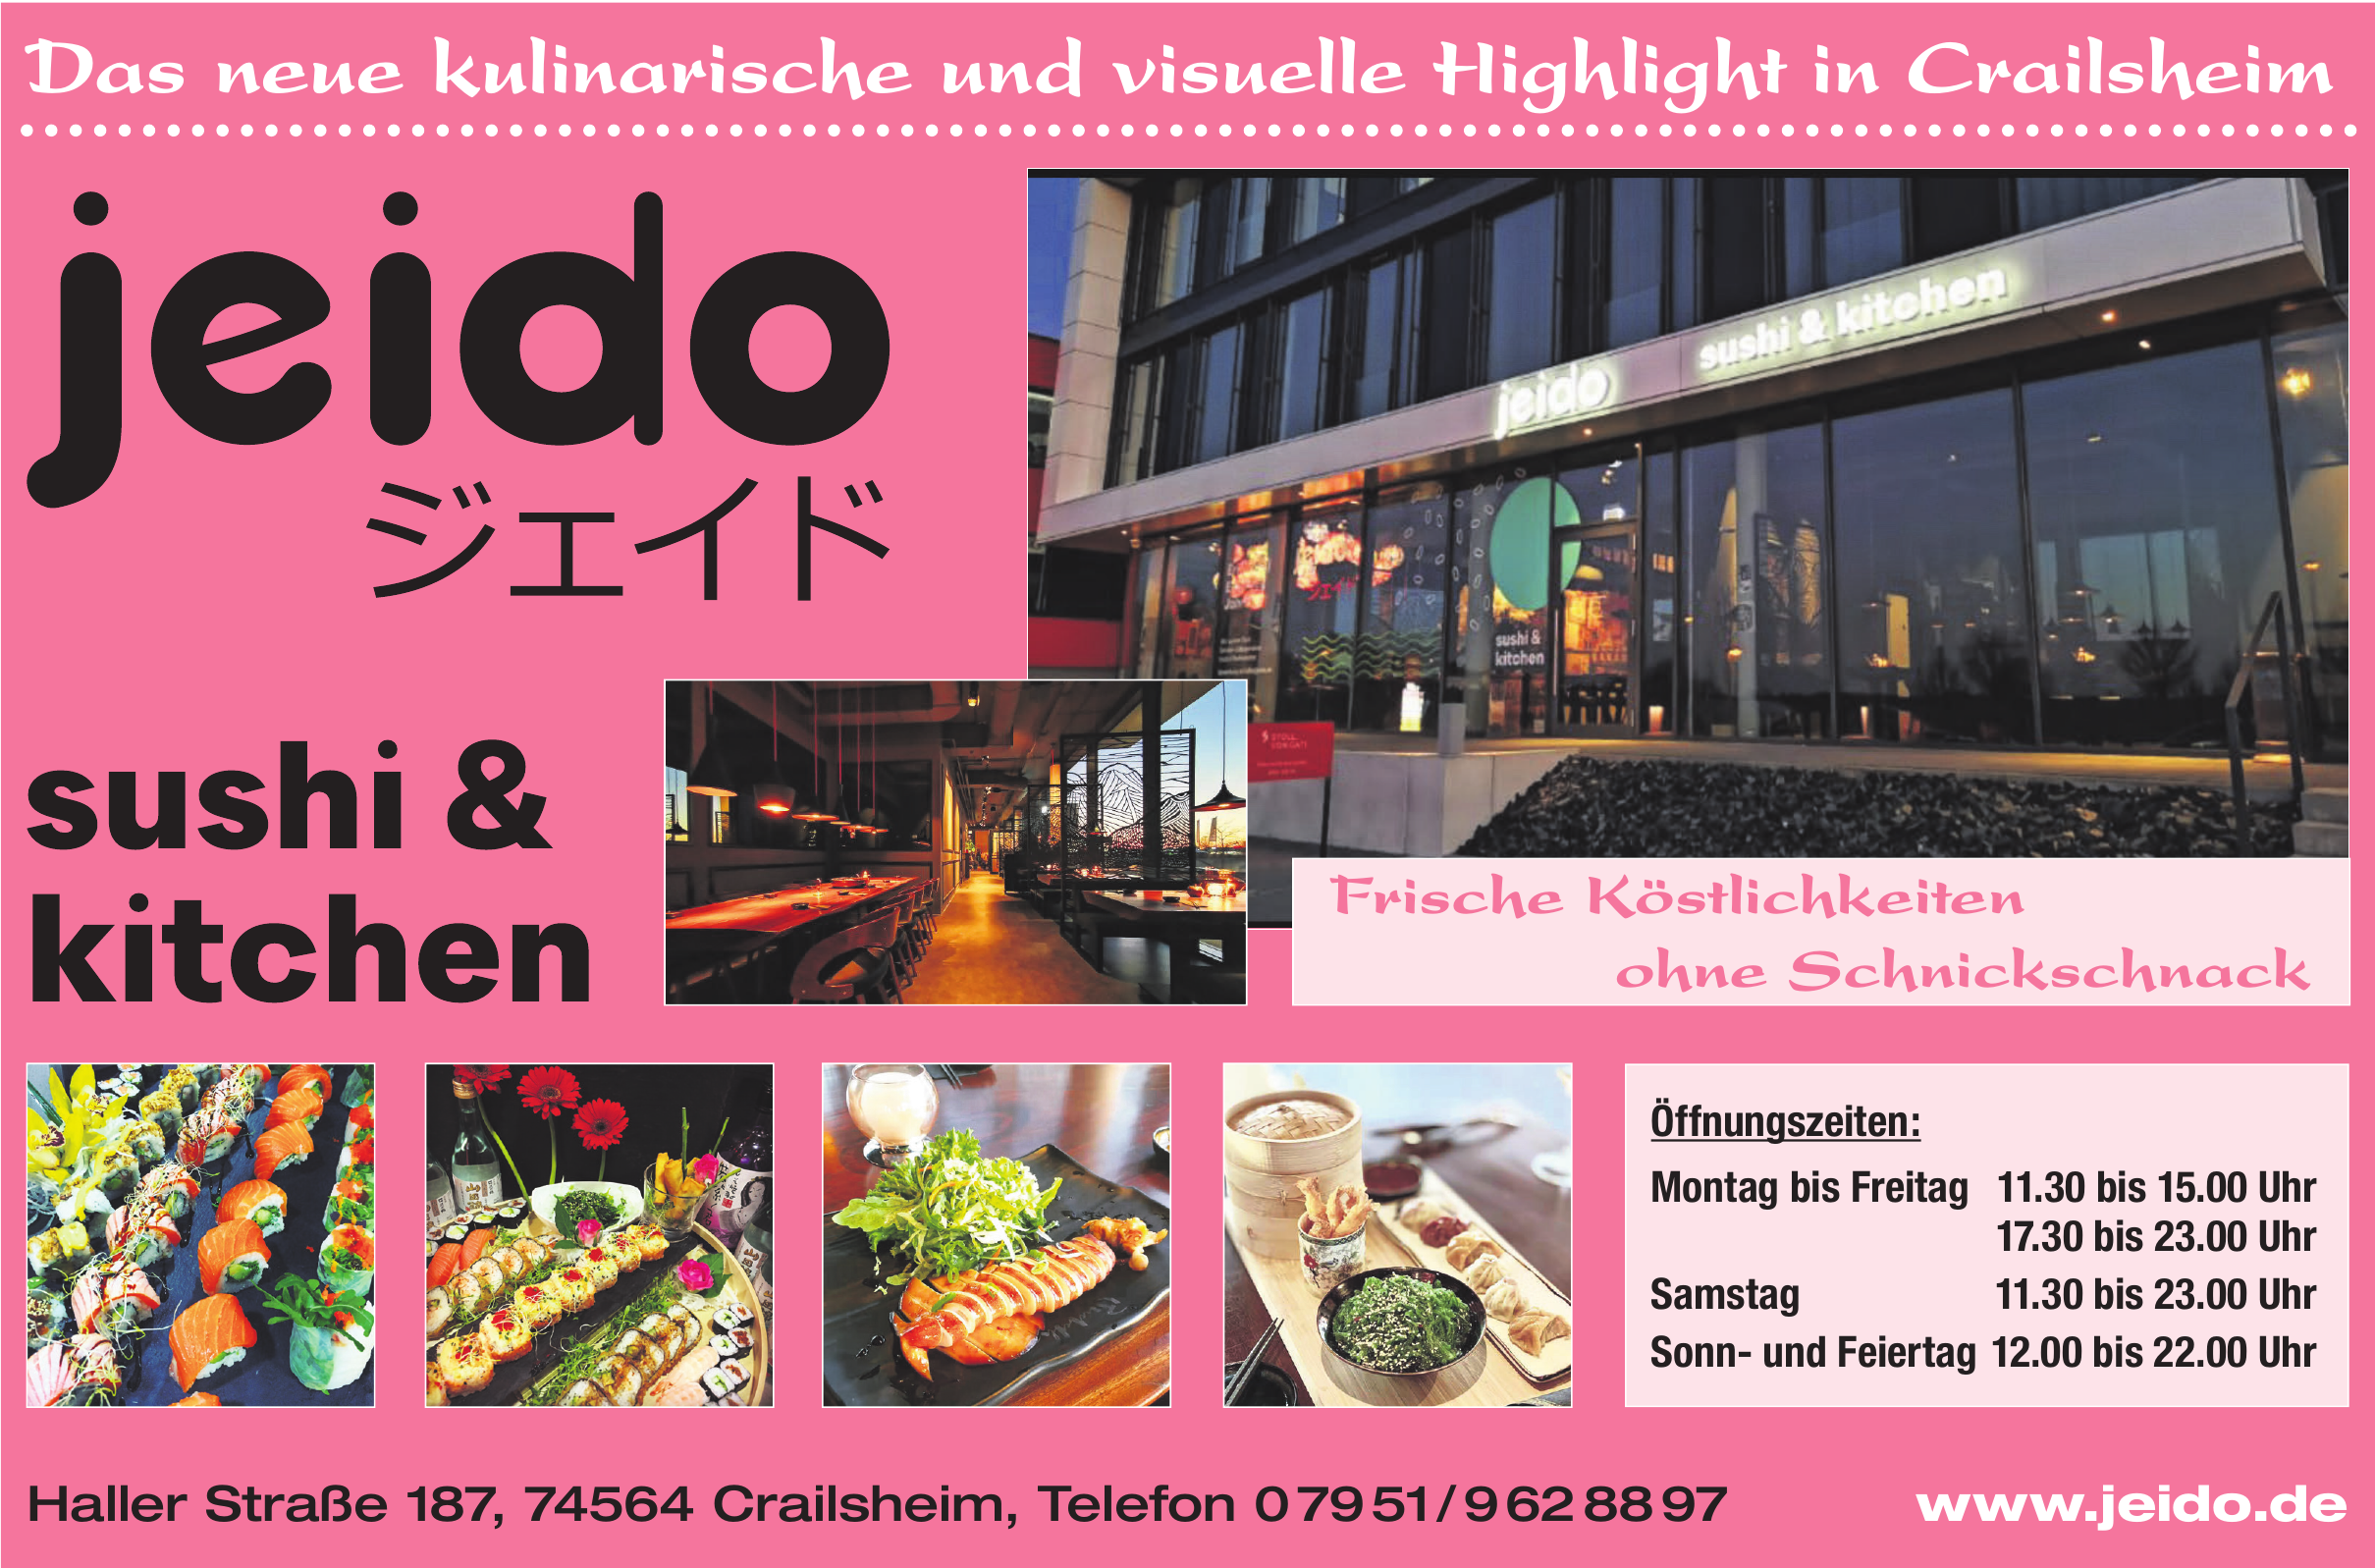 Jeido Sushi & Kitchen